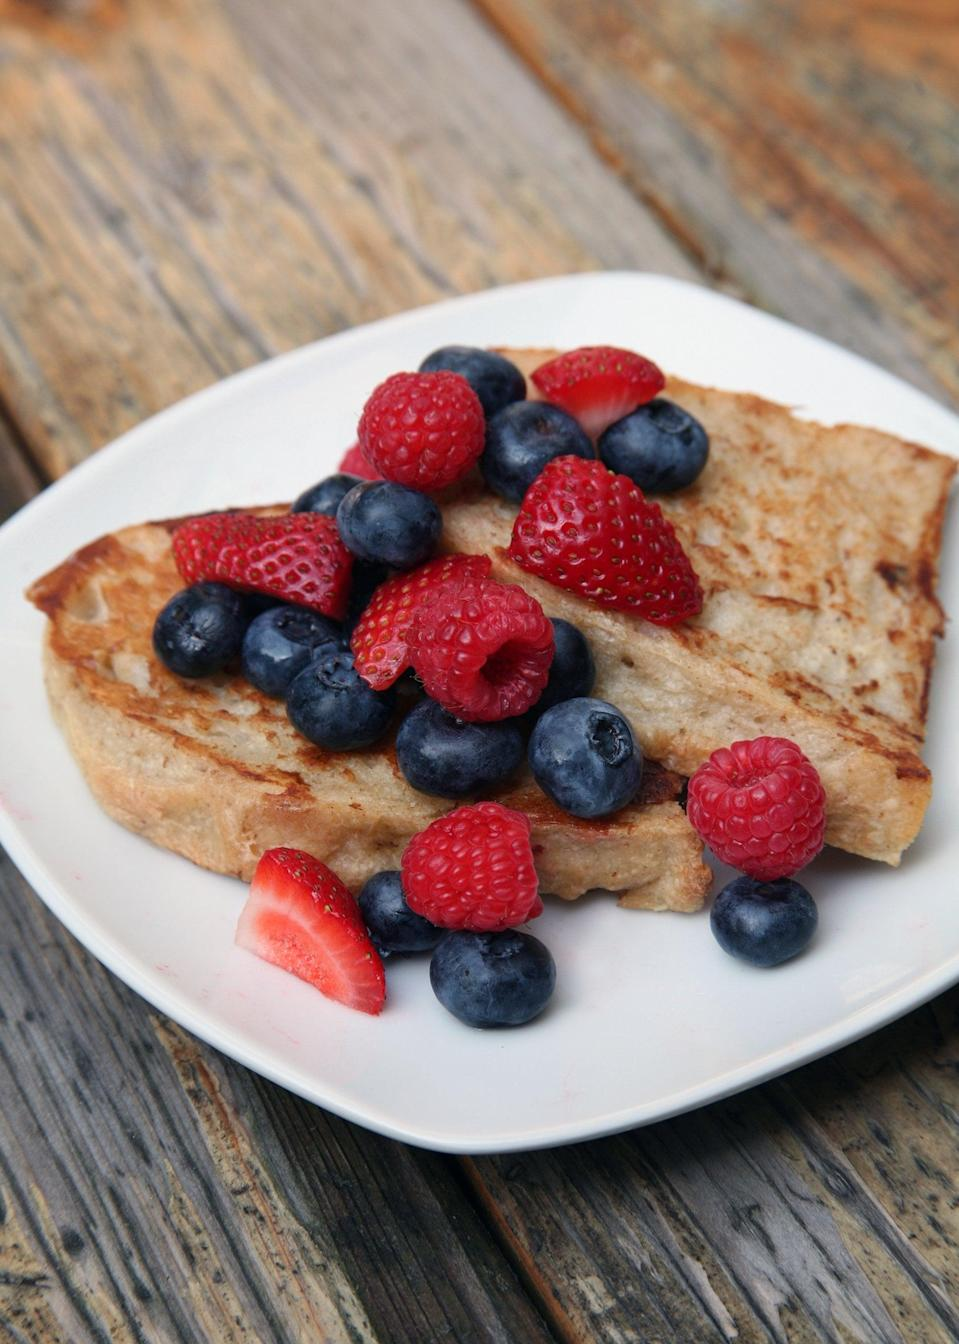 "<p>Soft and chewy, sweet and satisfying, this French toast is everything your brunch-loving taste buds crave, but with fewer calories and fat because it's made without eggs or dairy.</p> <p><strong>Calories:</strong> 330 for 3 slices<br> <strong>Protein:</strong> 13.2 grams</p> <p><strong>Get the recipe:</strong> <a href=""https://www.popsugar.com/fitness/Vegan-French-Toast-35403172/"" class=""link rapid-noclick-resp"" rel=""nofollow noopener"" target=""_blank"" data-ylk=""slk:vegan French toast"">vegan French toast</a></p>"